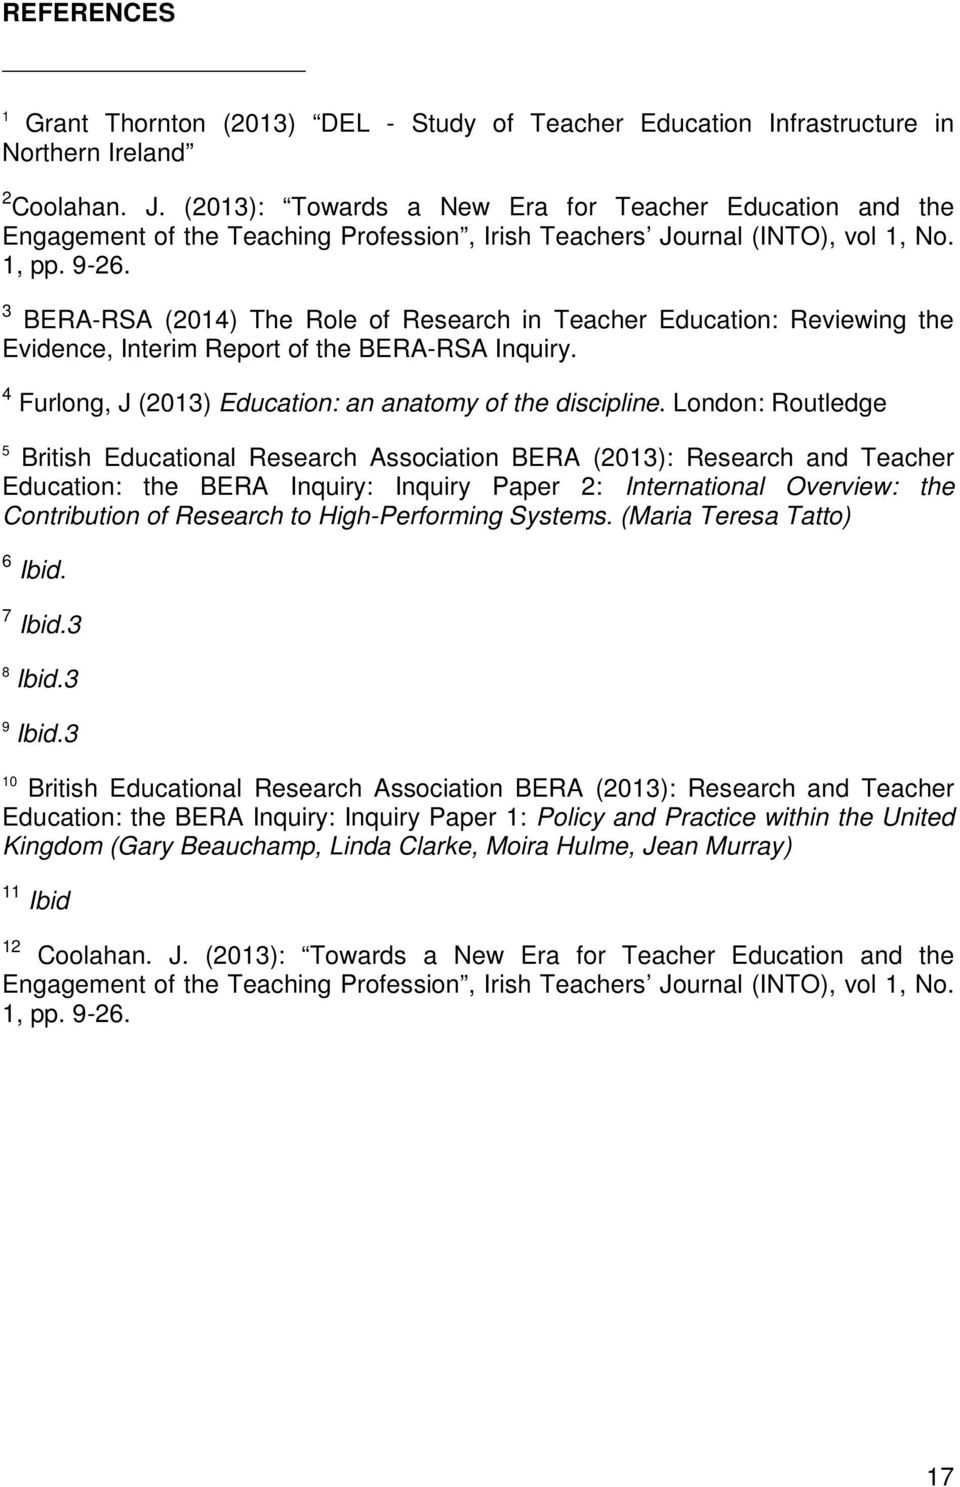 3 BERA-RSA (2014) The Role of Research in Teacher Education: Reviewing the Evidence, Interim Report of the BERA-RSA Inquiry. 4 Furlong, J (2013) Education: an anatomy of the discipline.